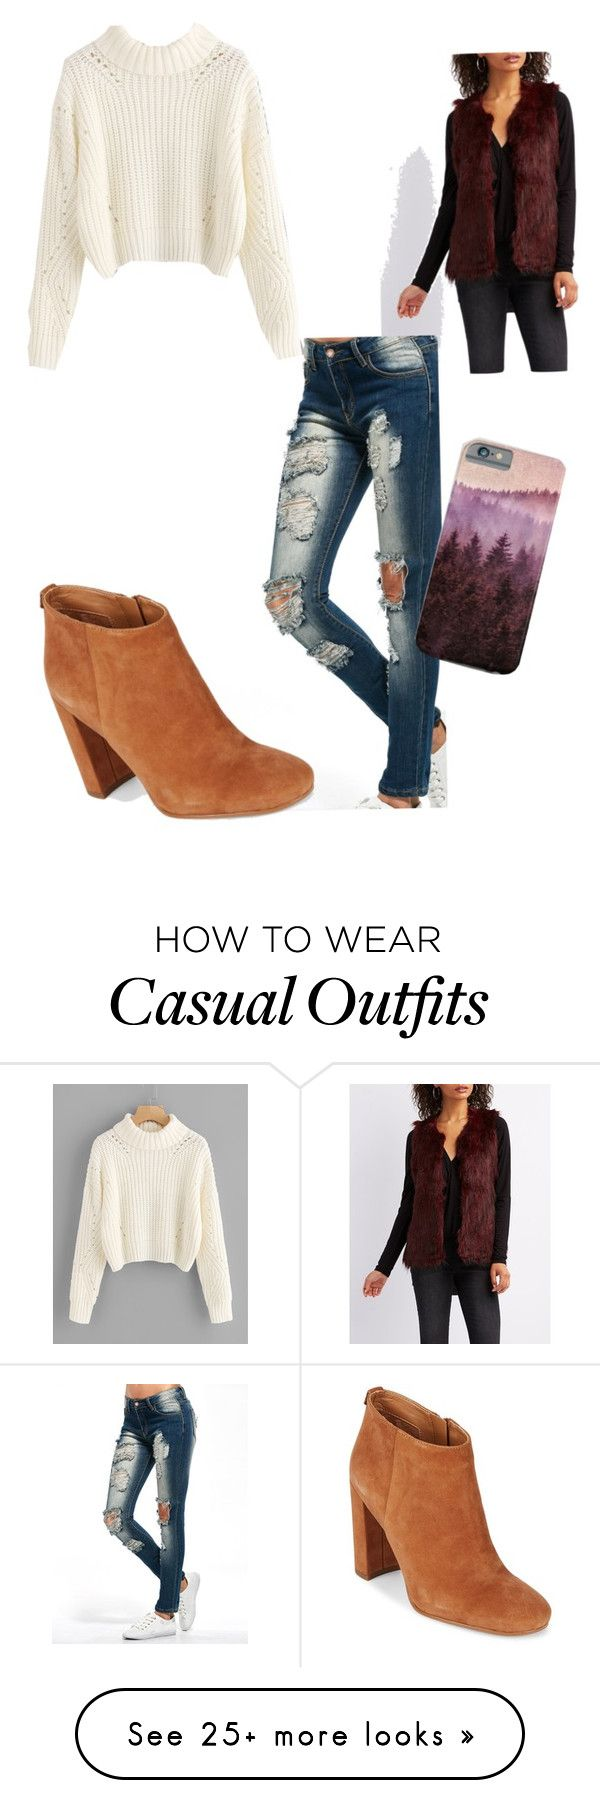 """Casual Winter"" by kayemilyt on Polyvore featuring Charlotte Russe and Sam Edelman"